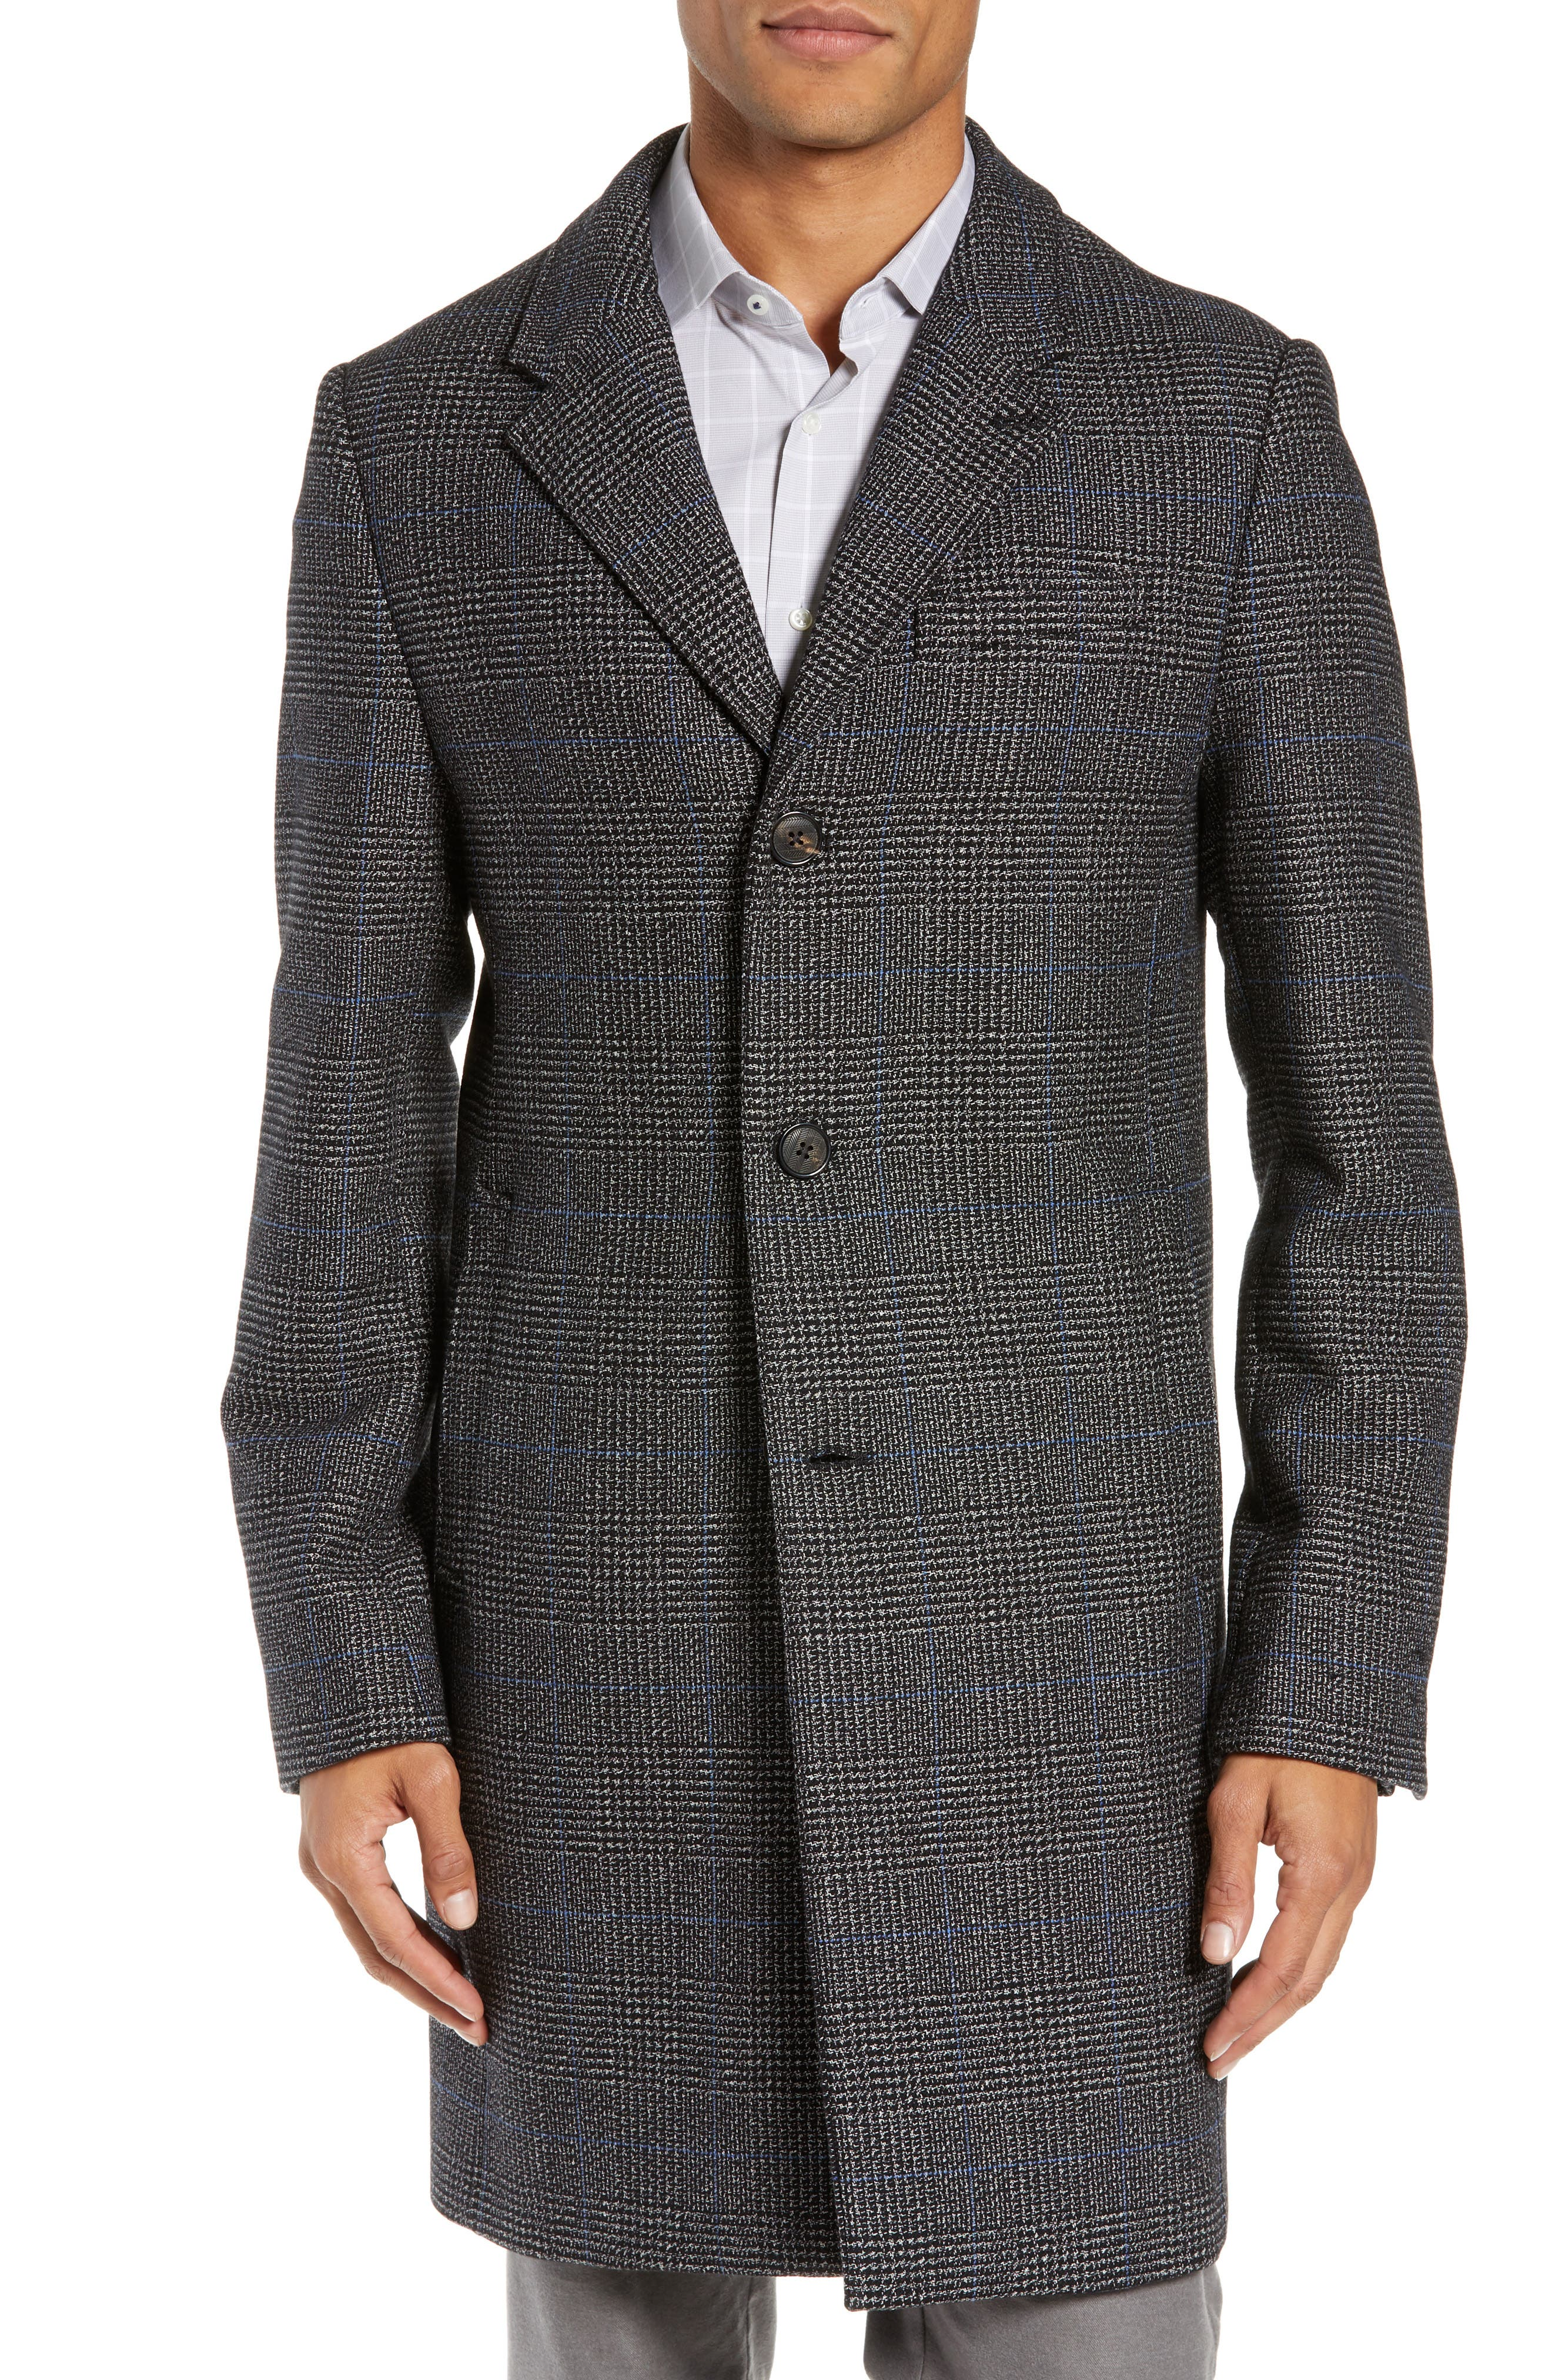 Plaid Stretch Wool & Cotton Overcoat,                             Alternate thumbnail 4, color,                             CHARCOAL